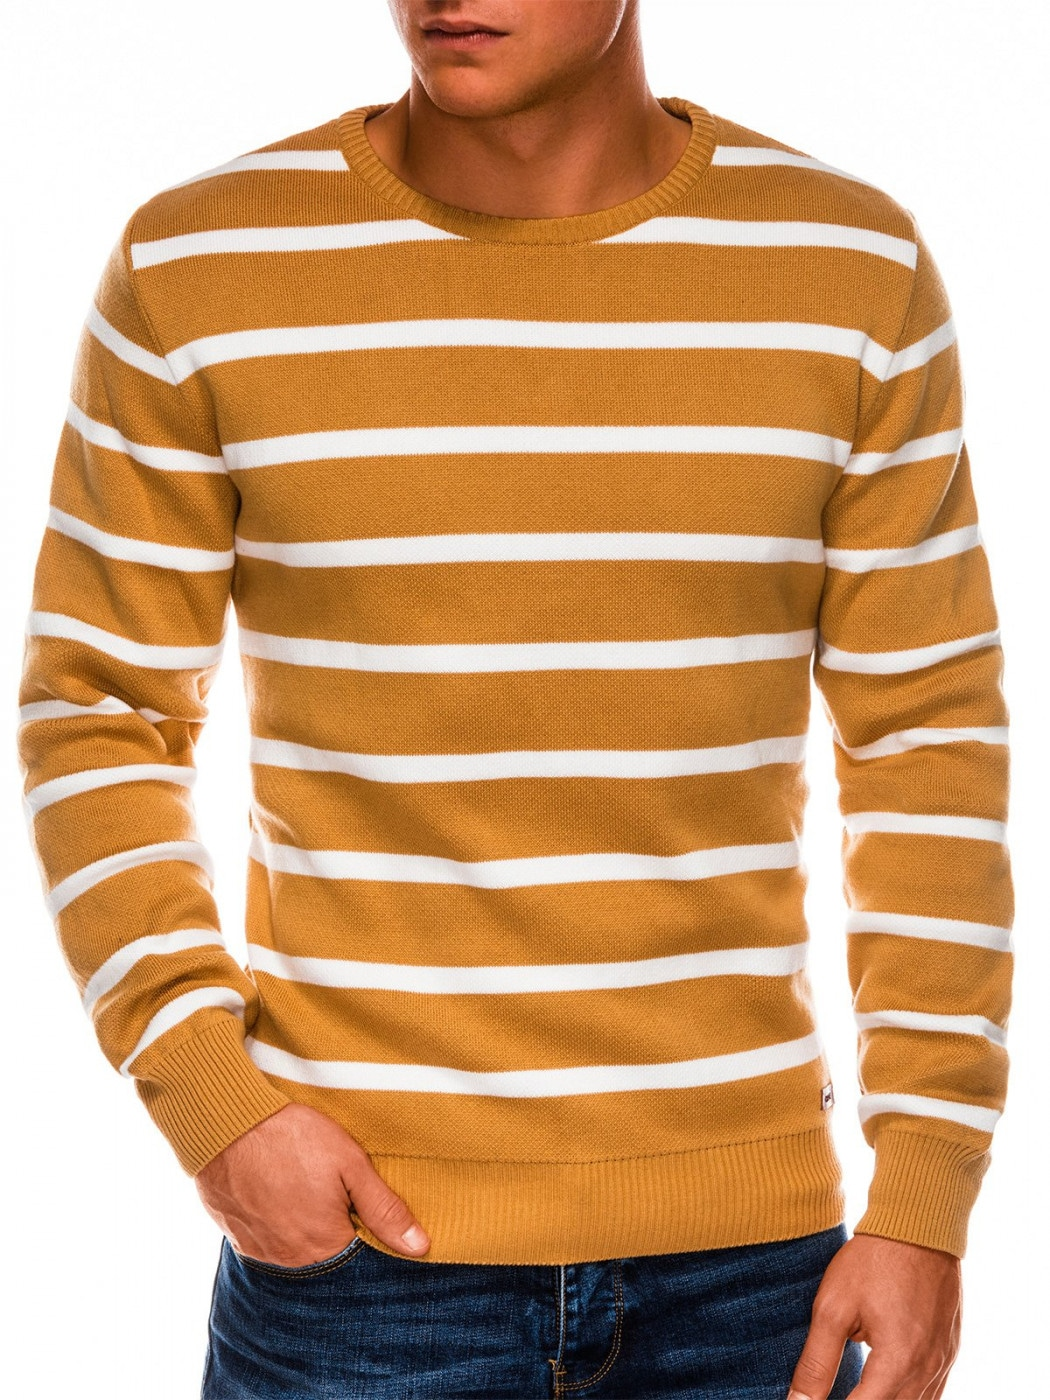 Men's sweater Ombre E155